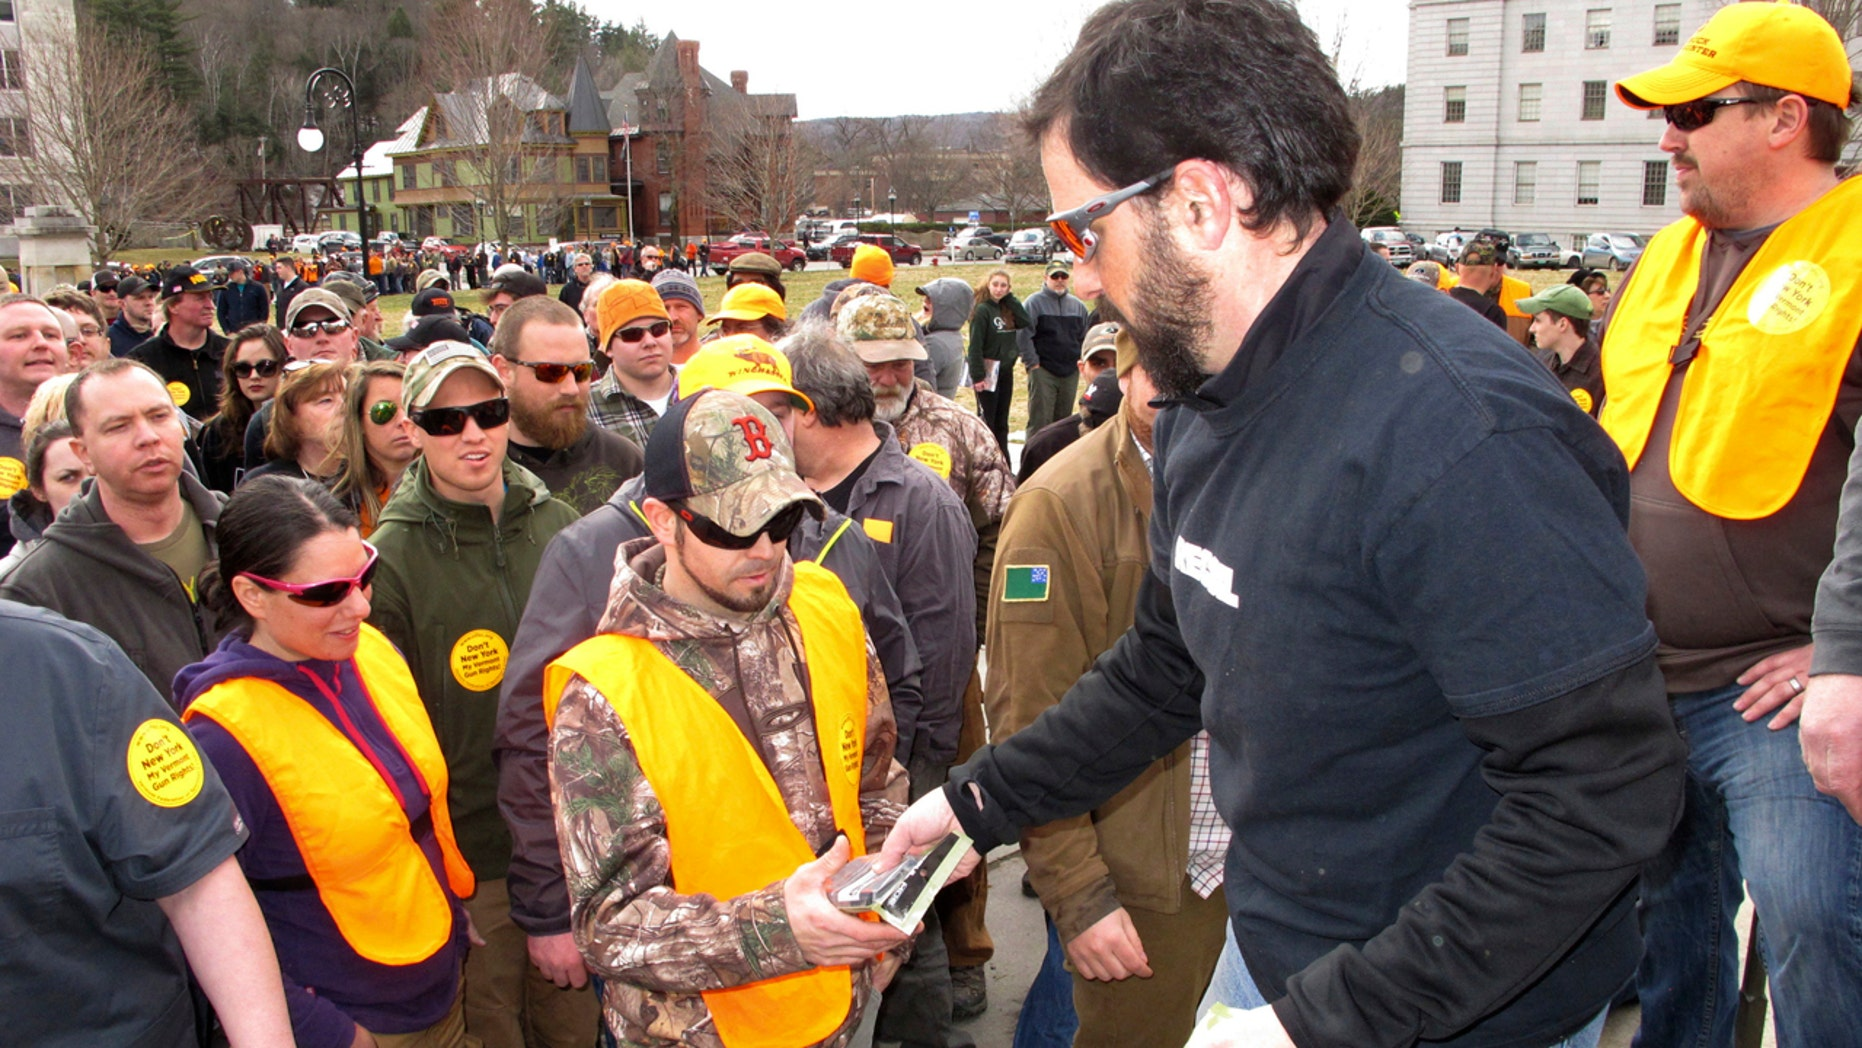 Rob Curtis, executive editor of a firearms magazine, handed out 30-round magazines at a gun rights event outside the Vermont Statehouse in Montpelier, Vt., on March 31 to oppose gun restriction legislation approved by state lawmakers.